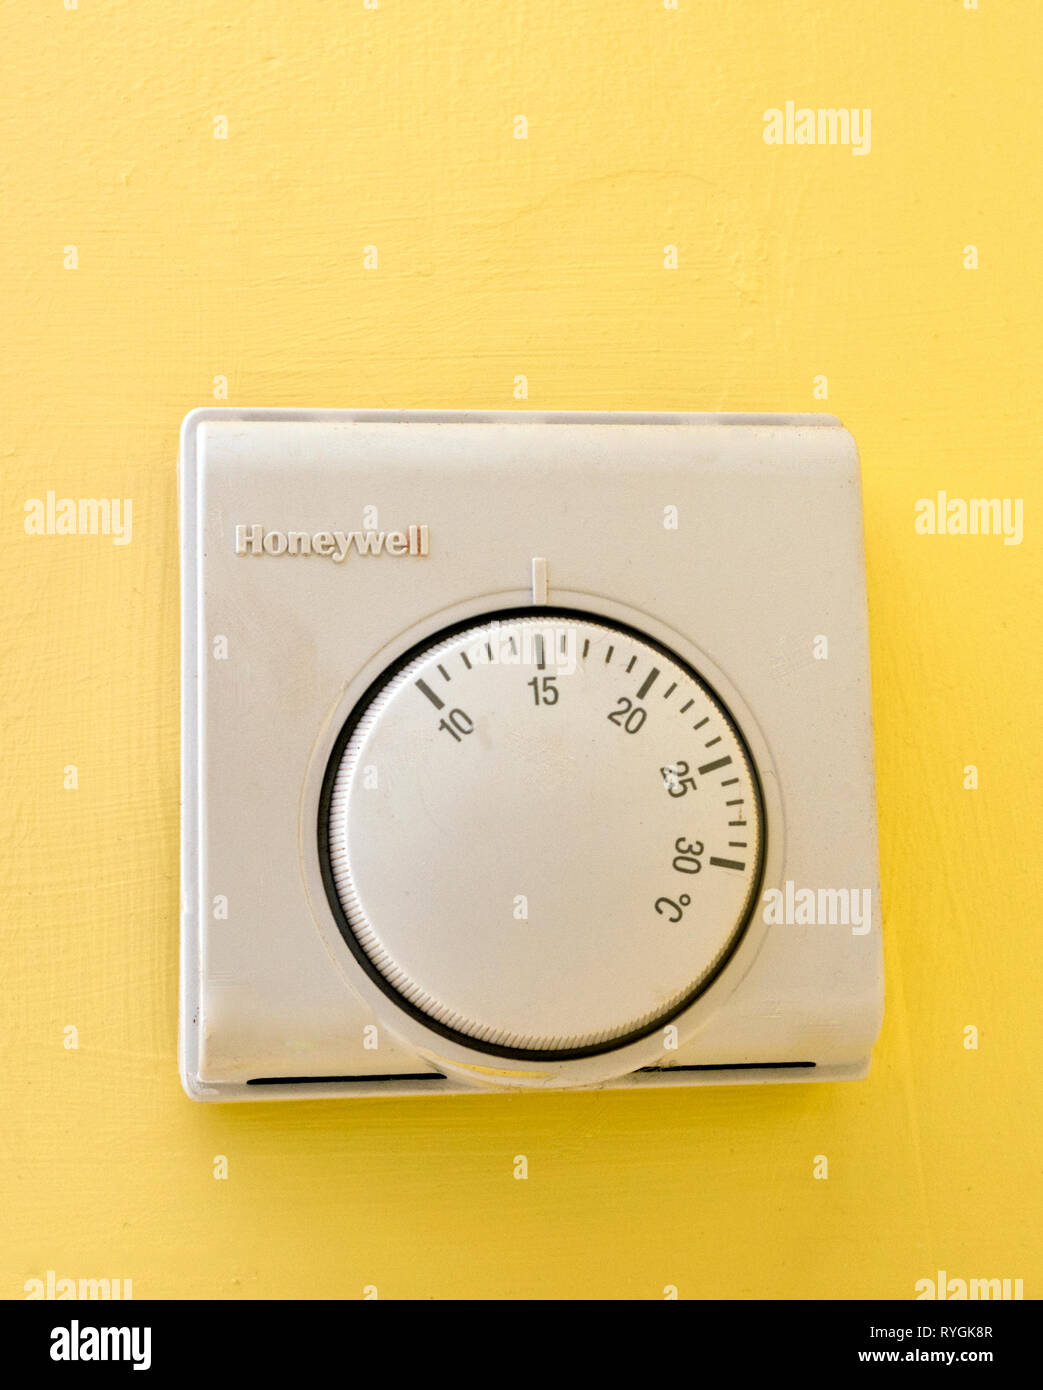 Honeywell Central Heating Analogue Room Thermostat Temperature Control, UK - Stock Image